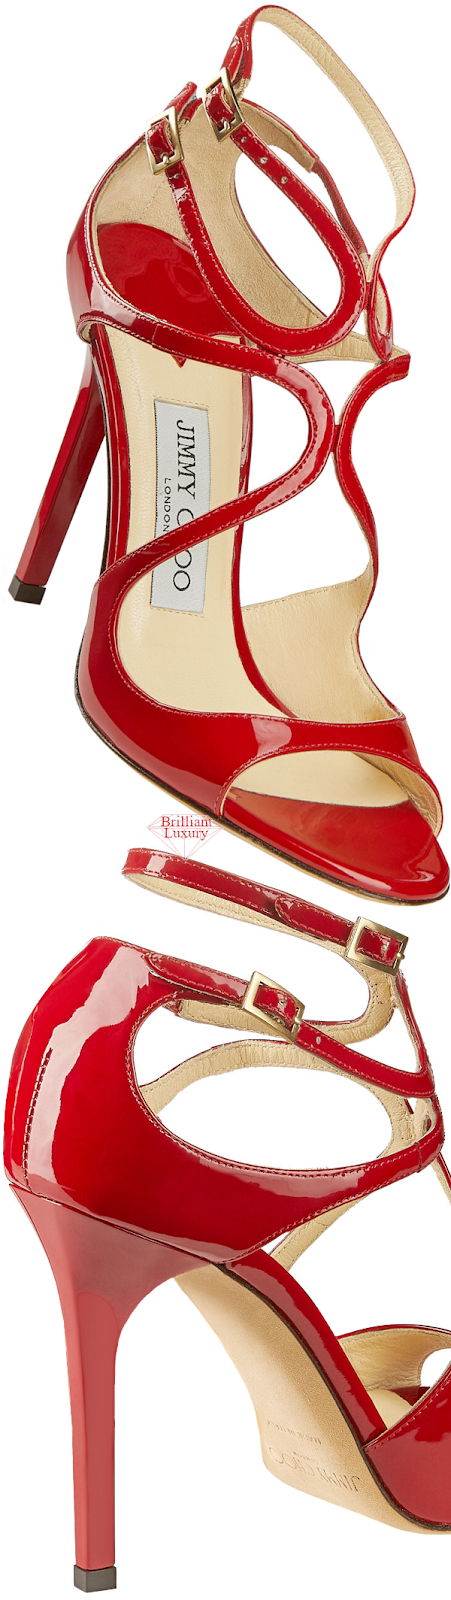 Jimmy Choo Lang Red Patent Leather Strappy Sandals #brilliantluxury